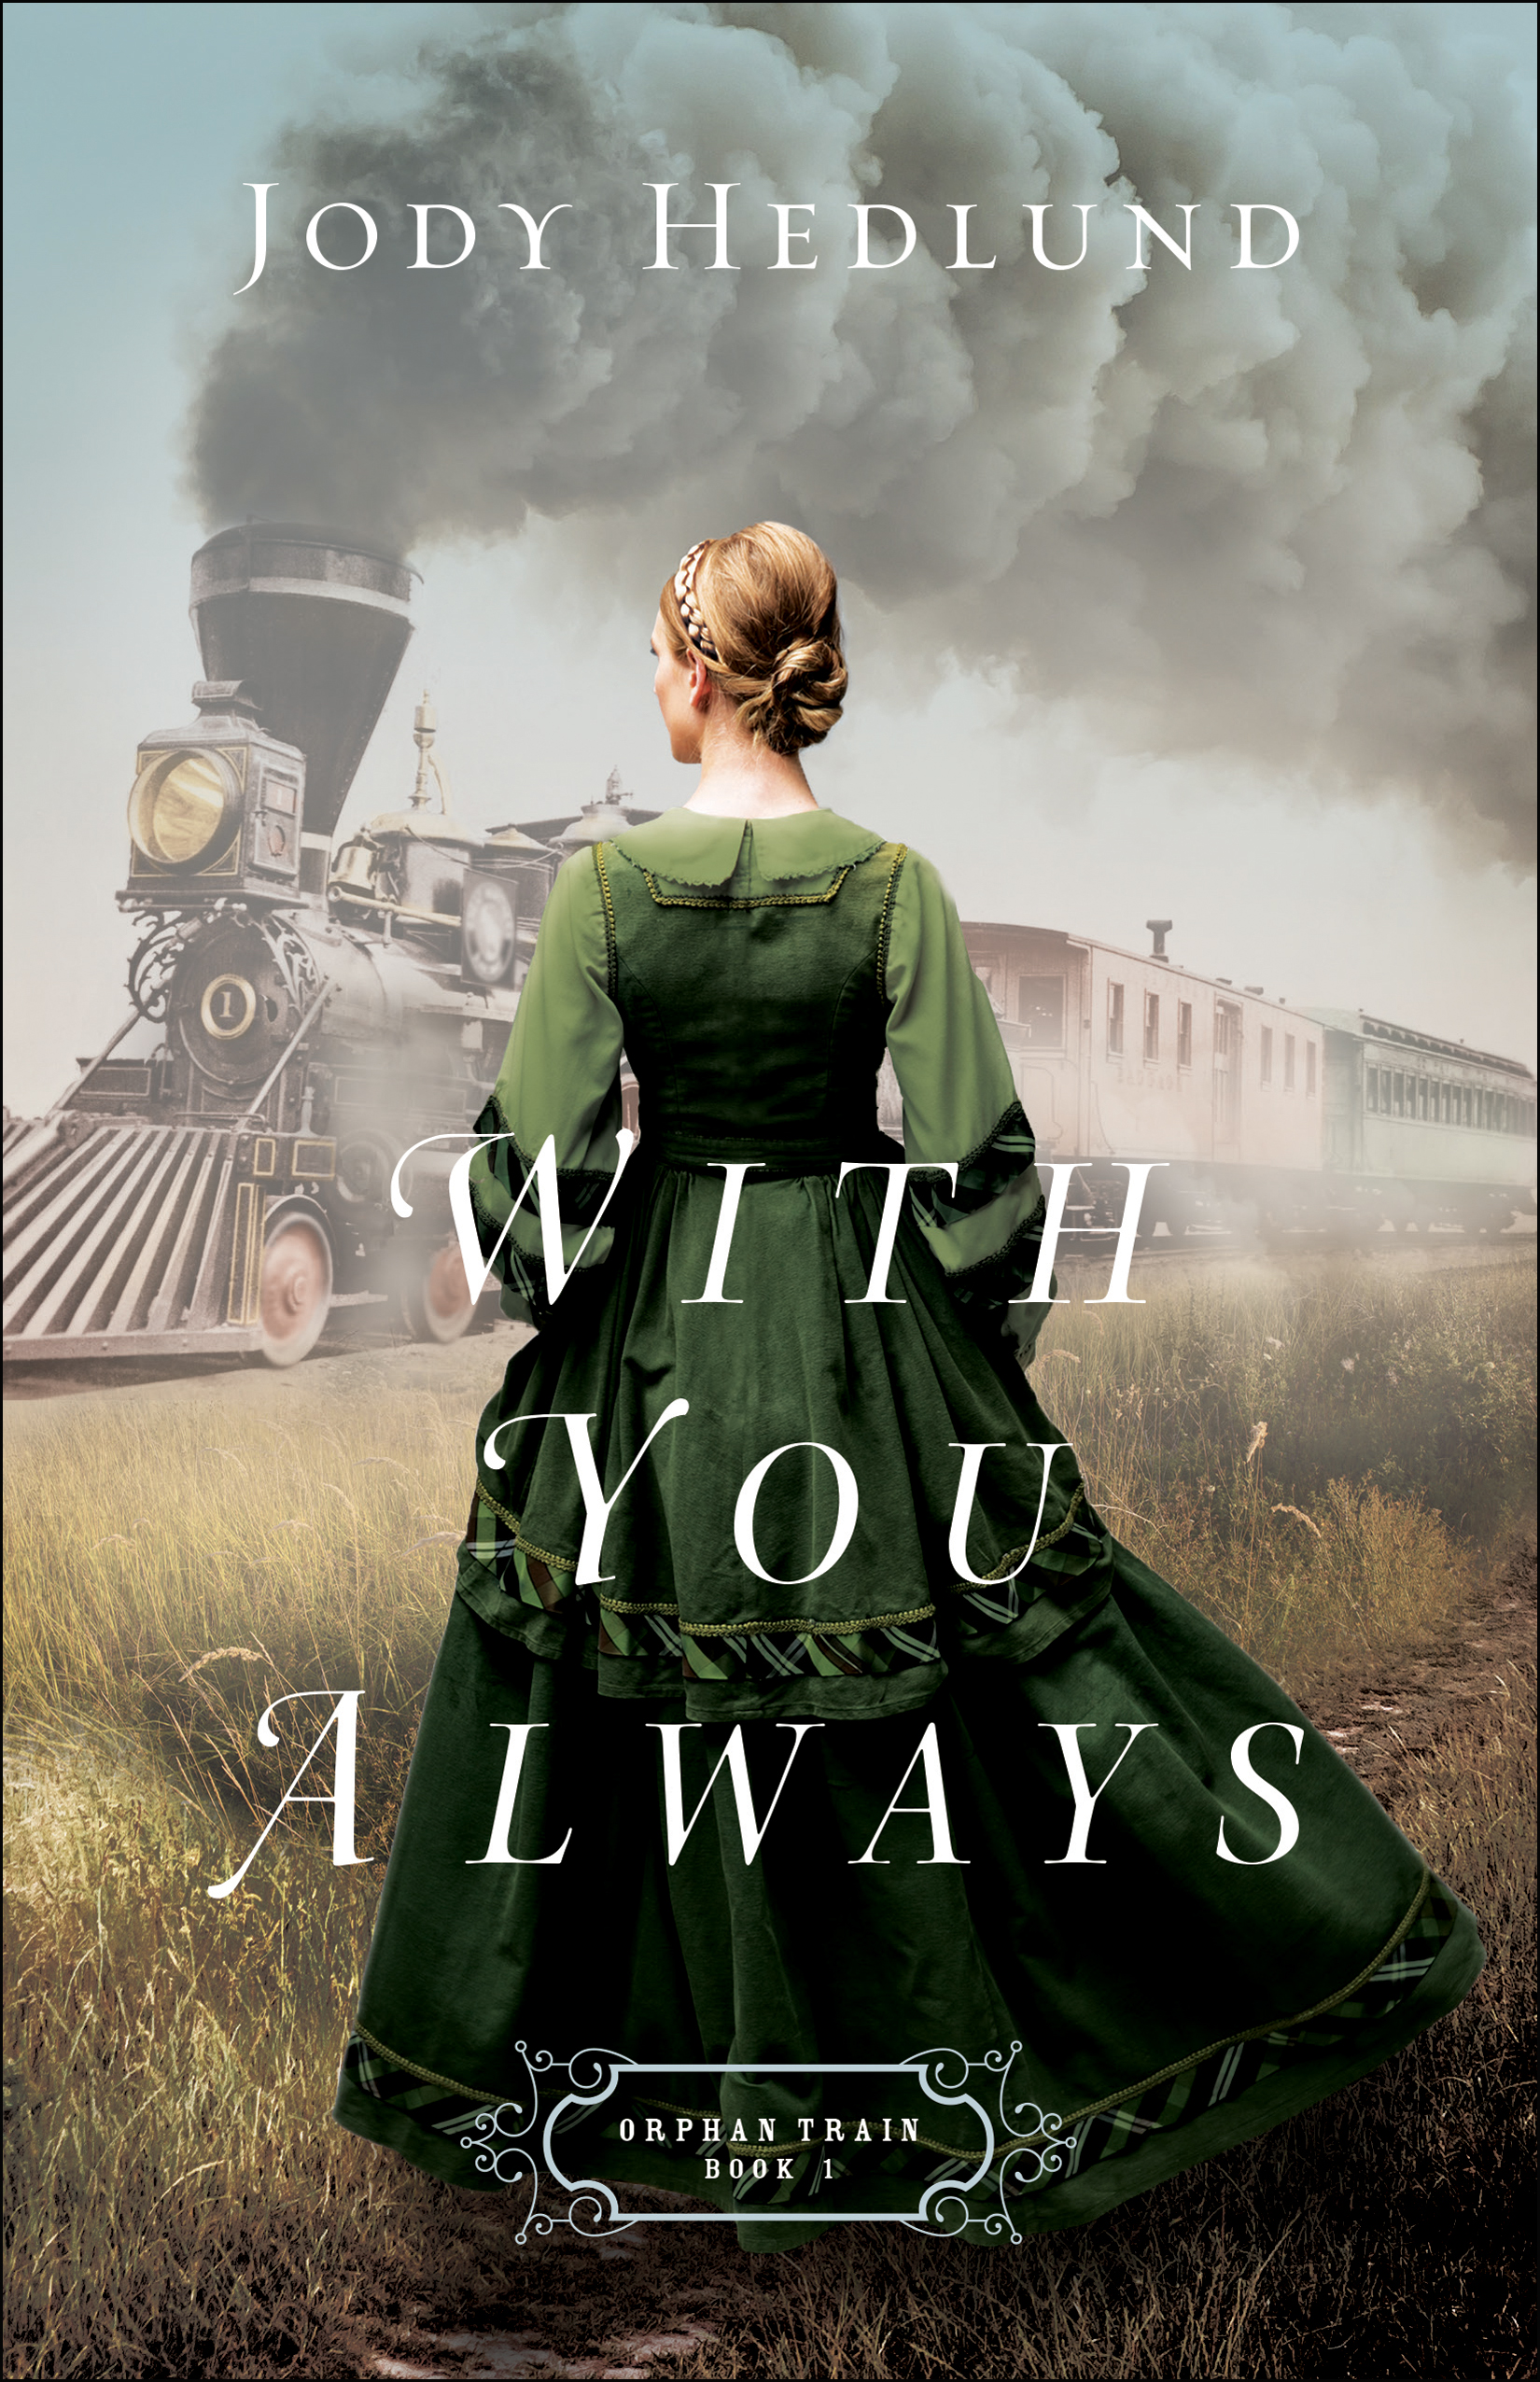 Book review of With You Always by Jody Hedlund (Bethany House) by papertapepins